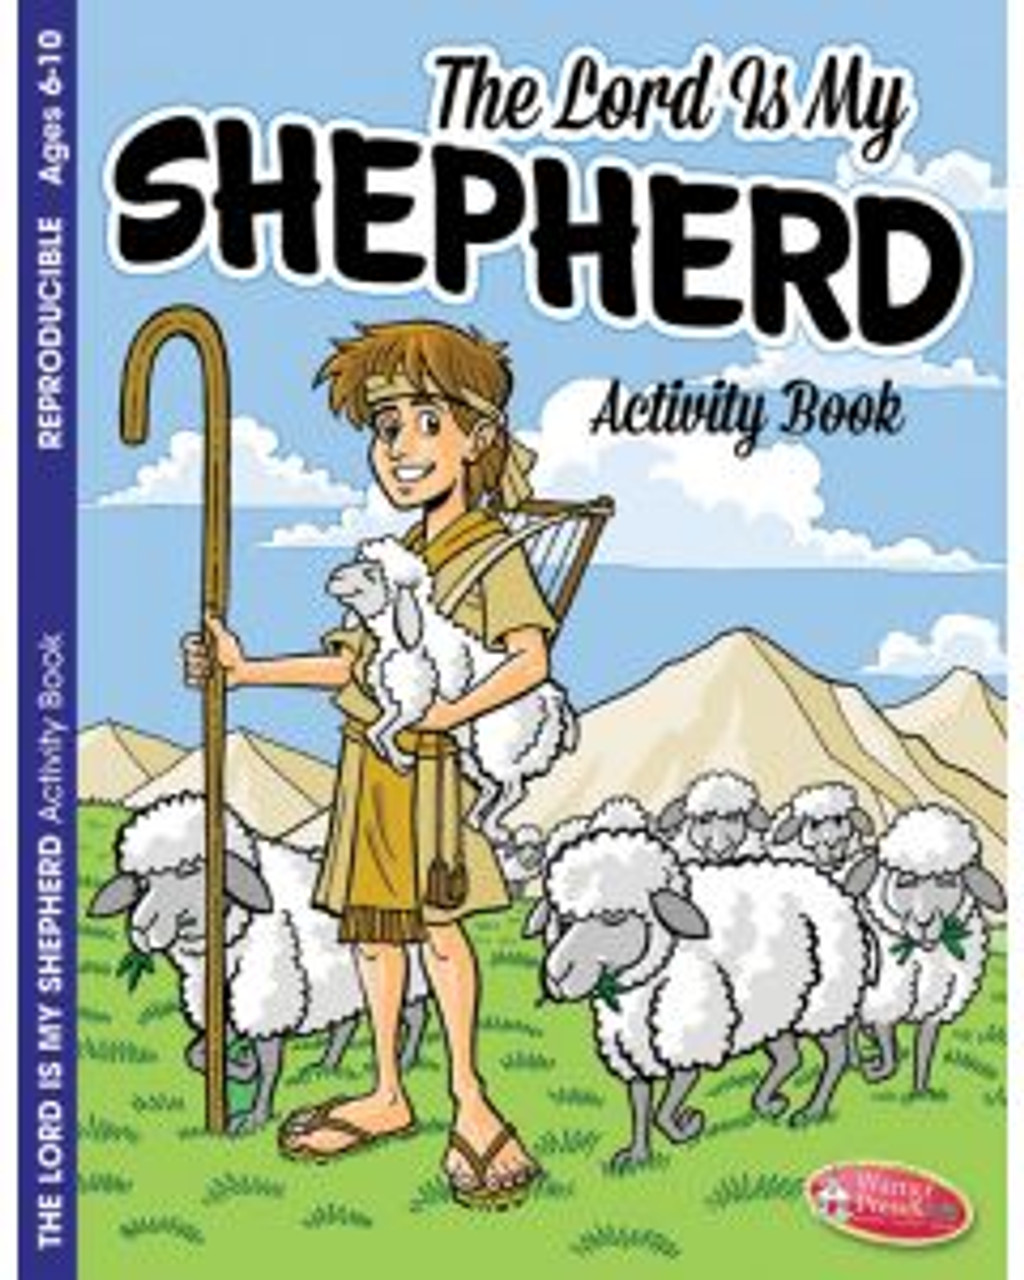 The Lord is My Shepherd (activity book)